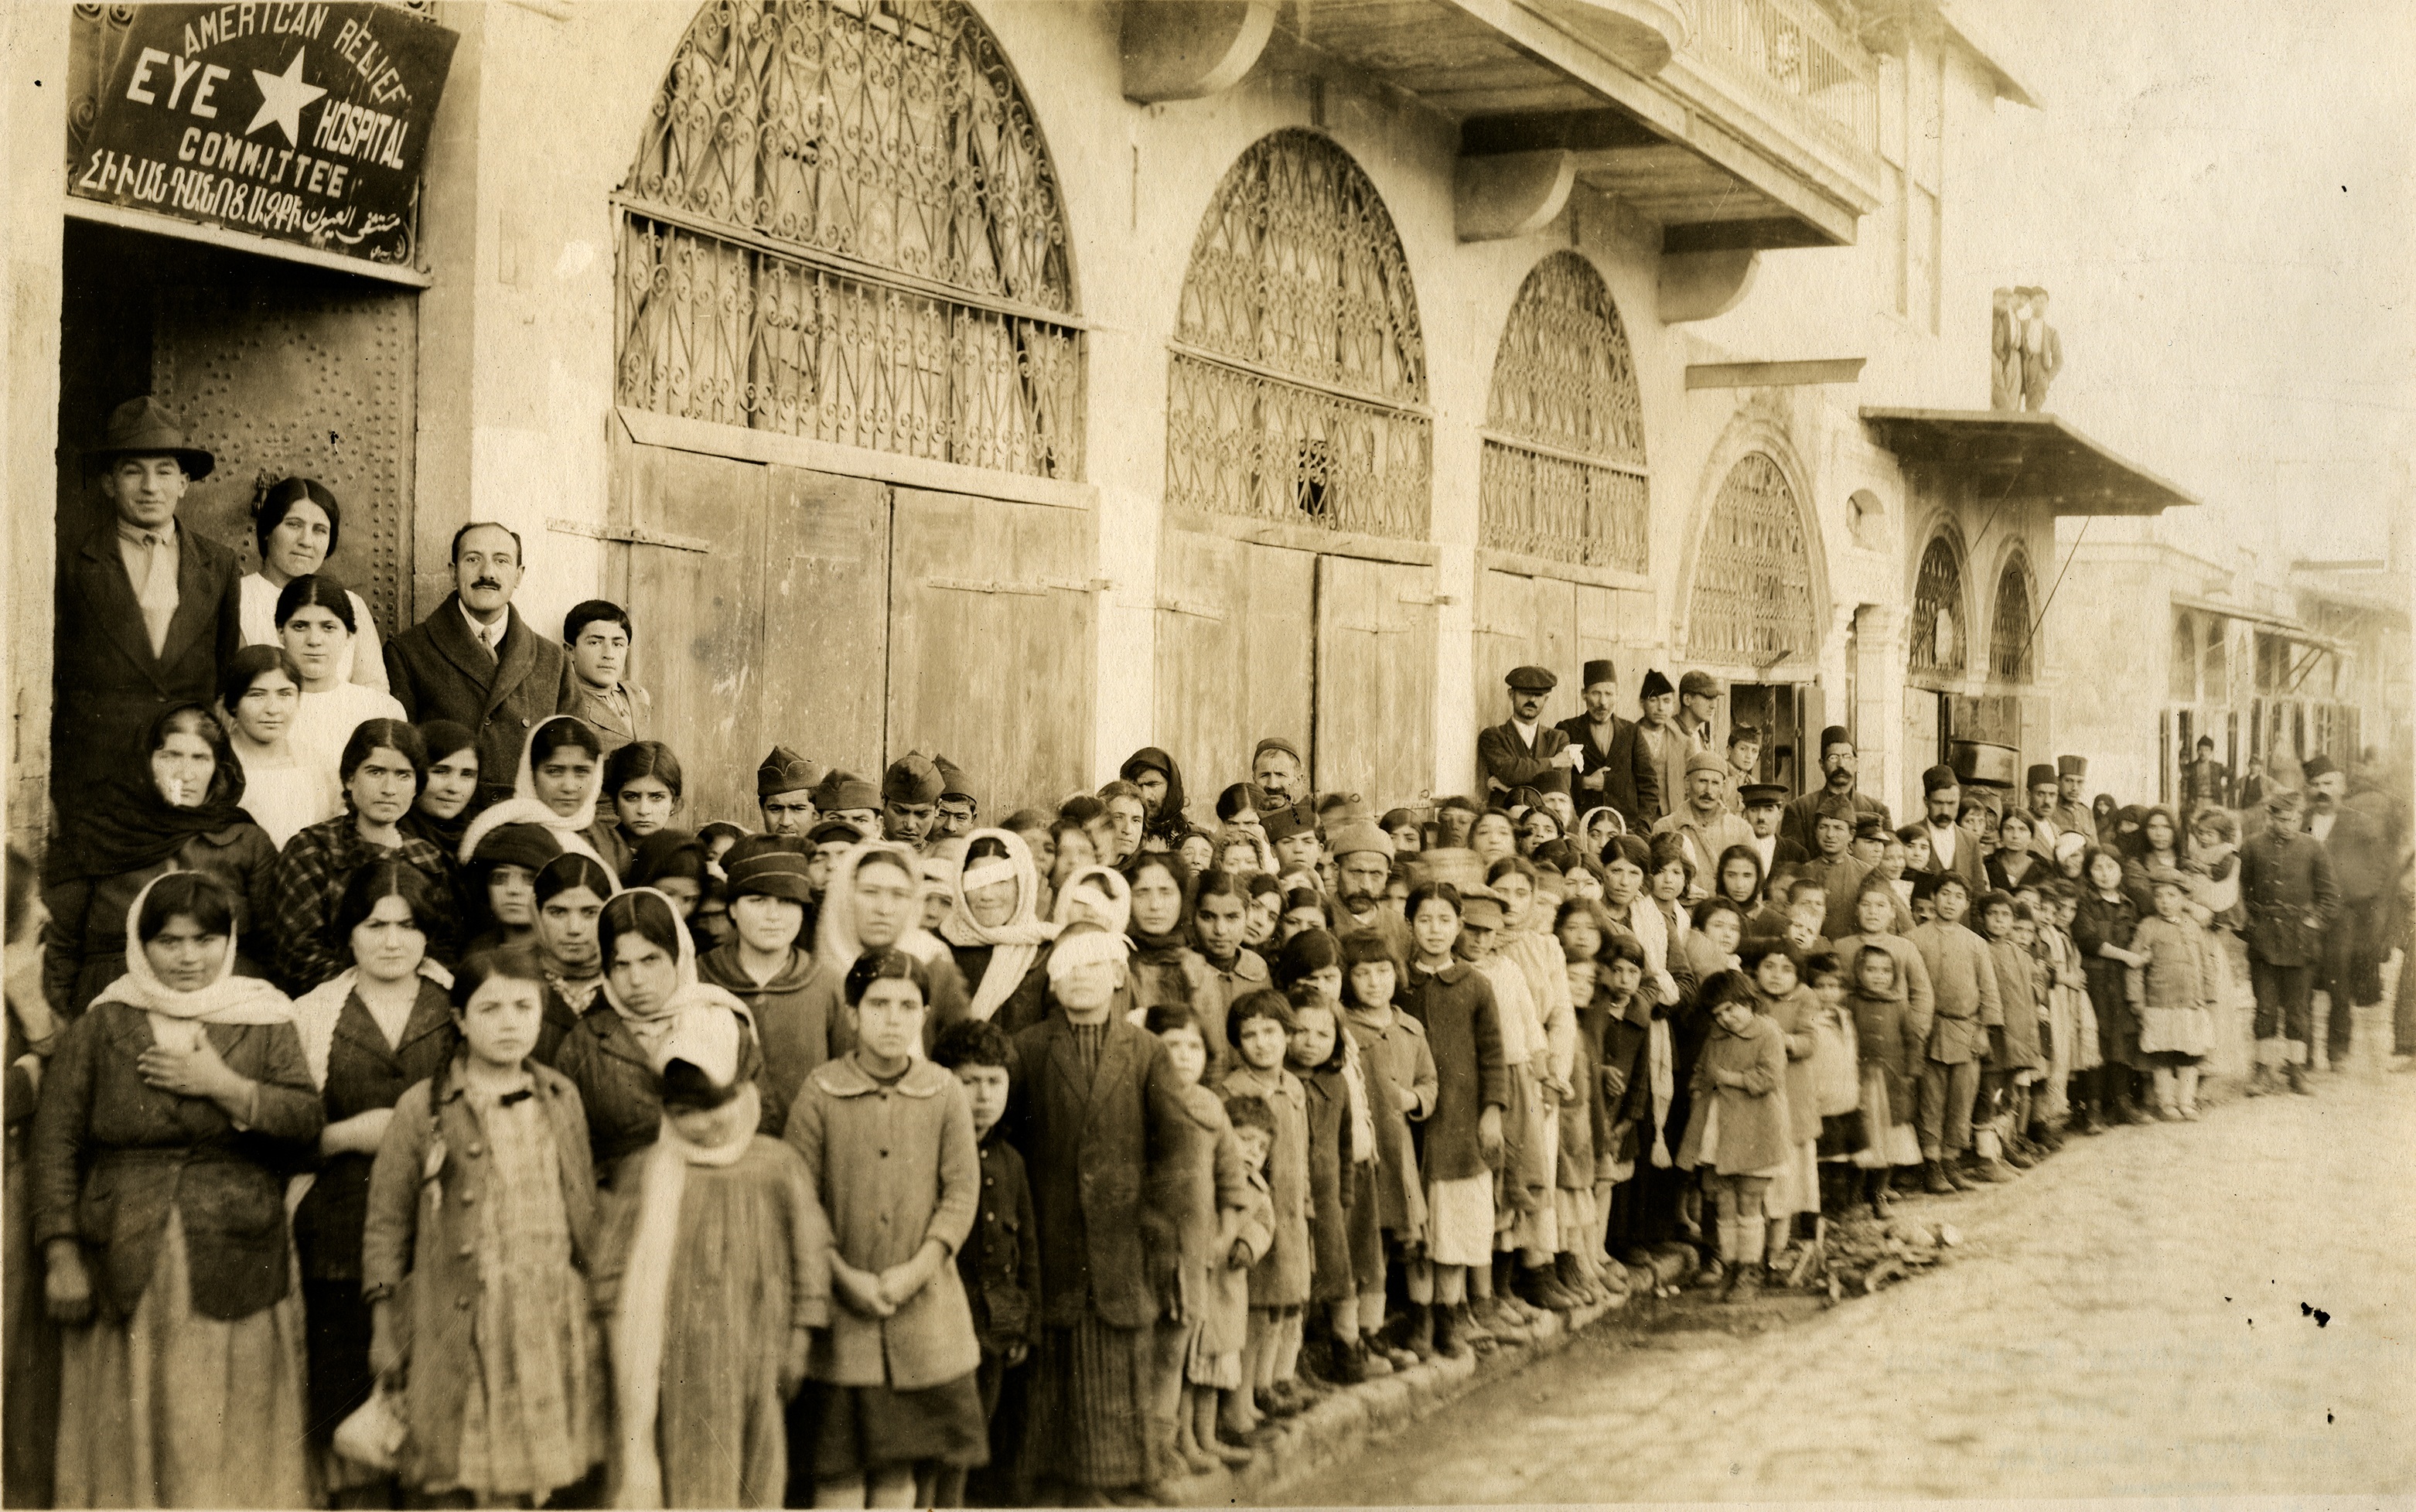 Line-up at the entrance to the A.C.R.N.E eye hospital, on the sidewalk. Dr. Tenner at right of door in back row at the left. January 7, 1920. Aleppo, Syria. Photograph by George R. Swain. Courtesy of the Kelsey Museum